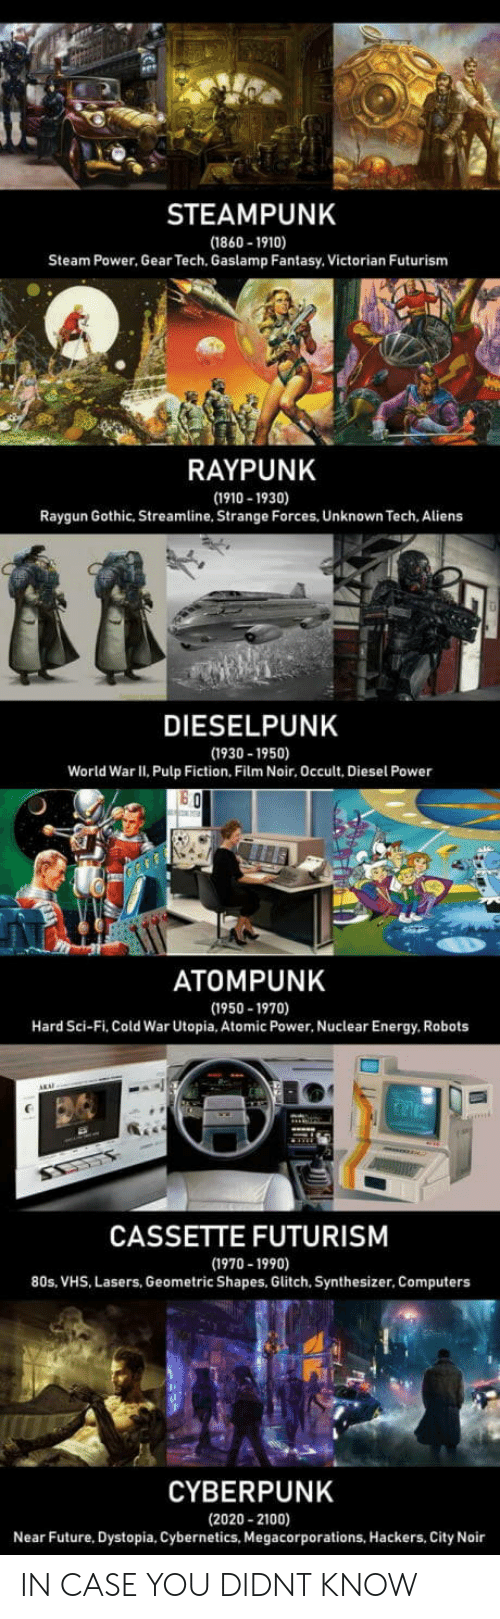 sci fi: STEAMPUNK  (1860-1910)  Steam Power, Gear Tech. Gaslamp Fantasy. Victorian Futurism  RAYPUNK  (1910-1930)  Raygun Gothic, Streamline, Strange Forces, Unknown Tech. Aliens  DIESELPUNK  (1930 -1950)  World War II, Pulp Fiction, Film Noir, Occult, Diesel Power  ATOMPUNK  (1950-1970)  Hard Sci-Fi, Cold War Utopia, Atomic Power, Nuclear Energy, Robots  CASSETTE FUTURISM  (1970-1990)  80s, VHS, Lasers, Geometric Shapes, Glitch, Synthesizer, Computers  CYBERPUNK  (2020- 2100)  Near Future, Dystopia, Cybernetics, Megacorporations, Hackers, City Noir IN CASE YOU DIDNT KNOW